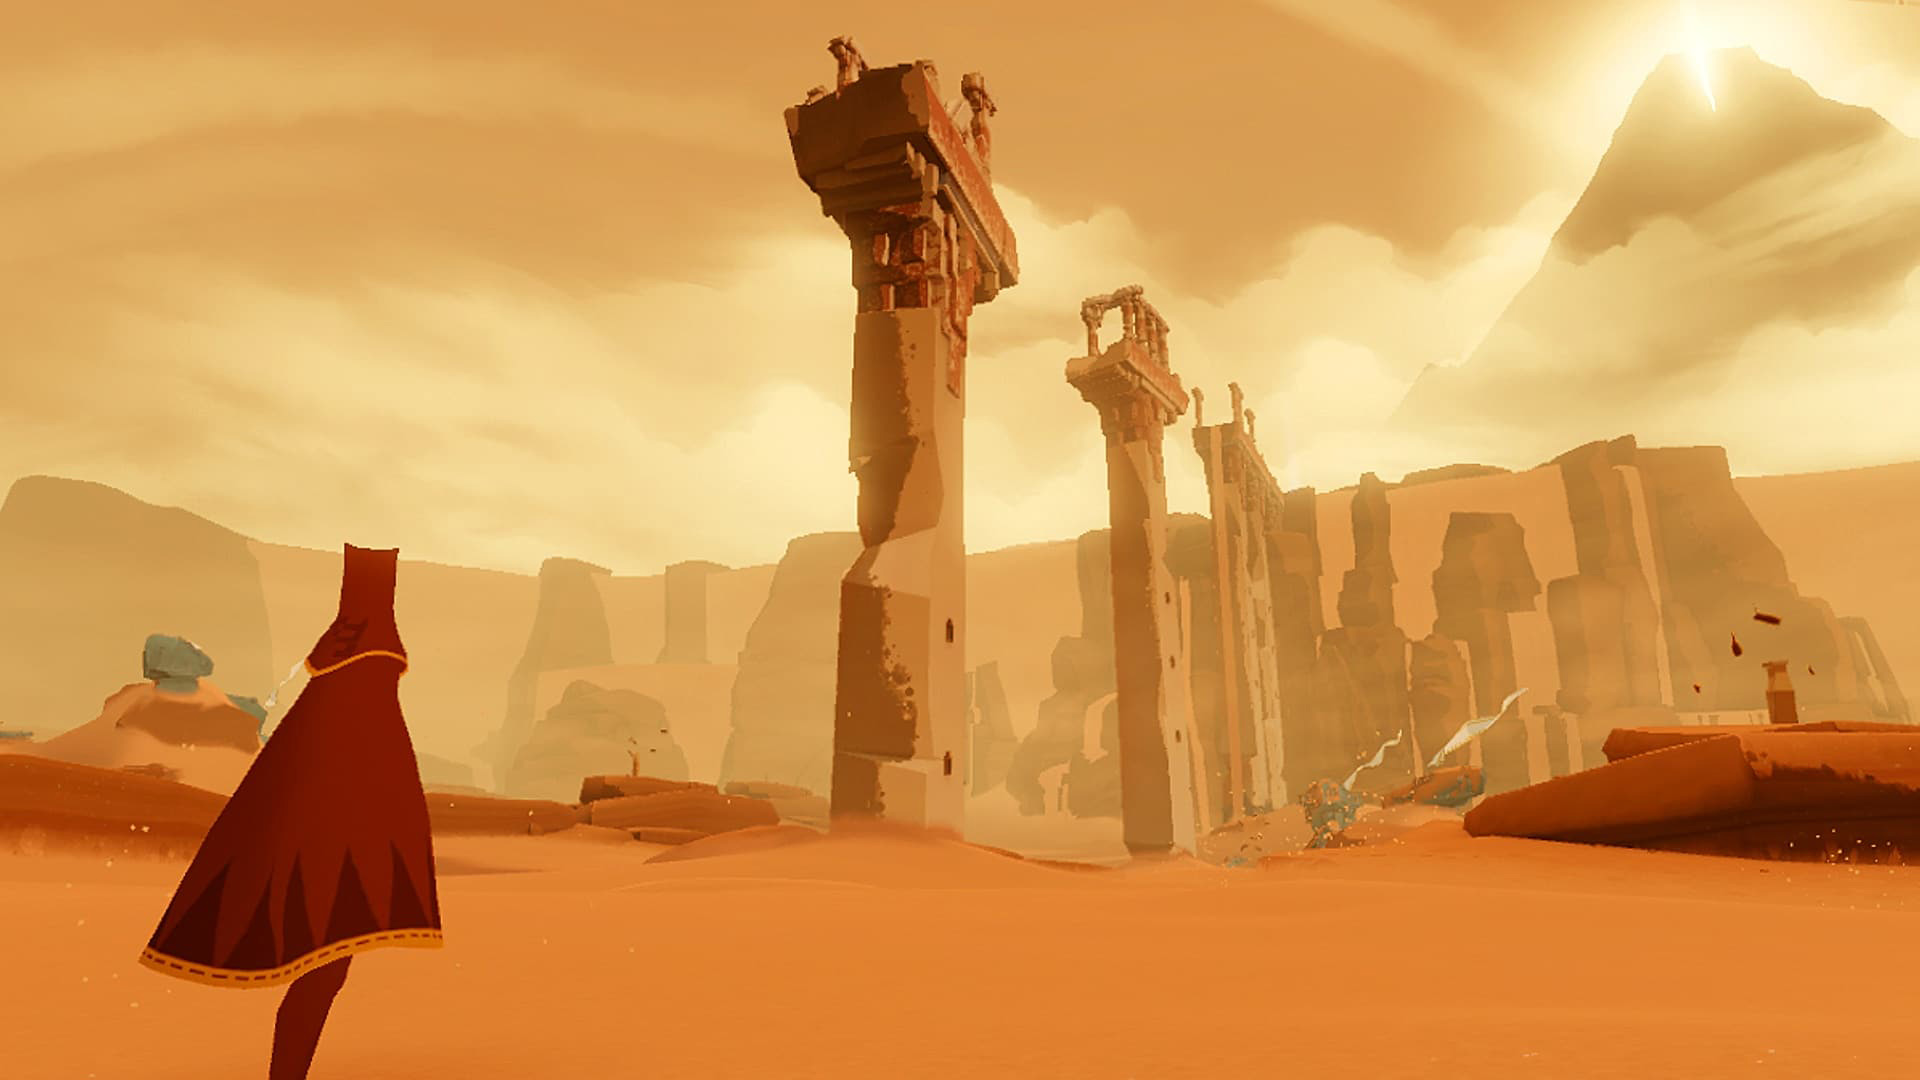 Journey ©thatgamecompany/Sony Computer Entertainment